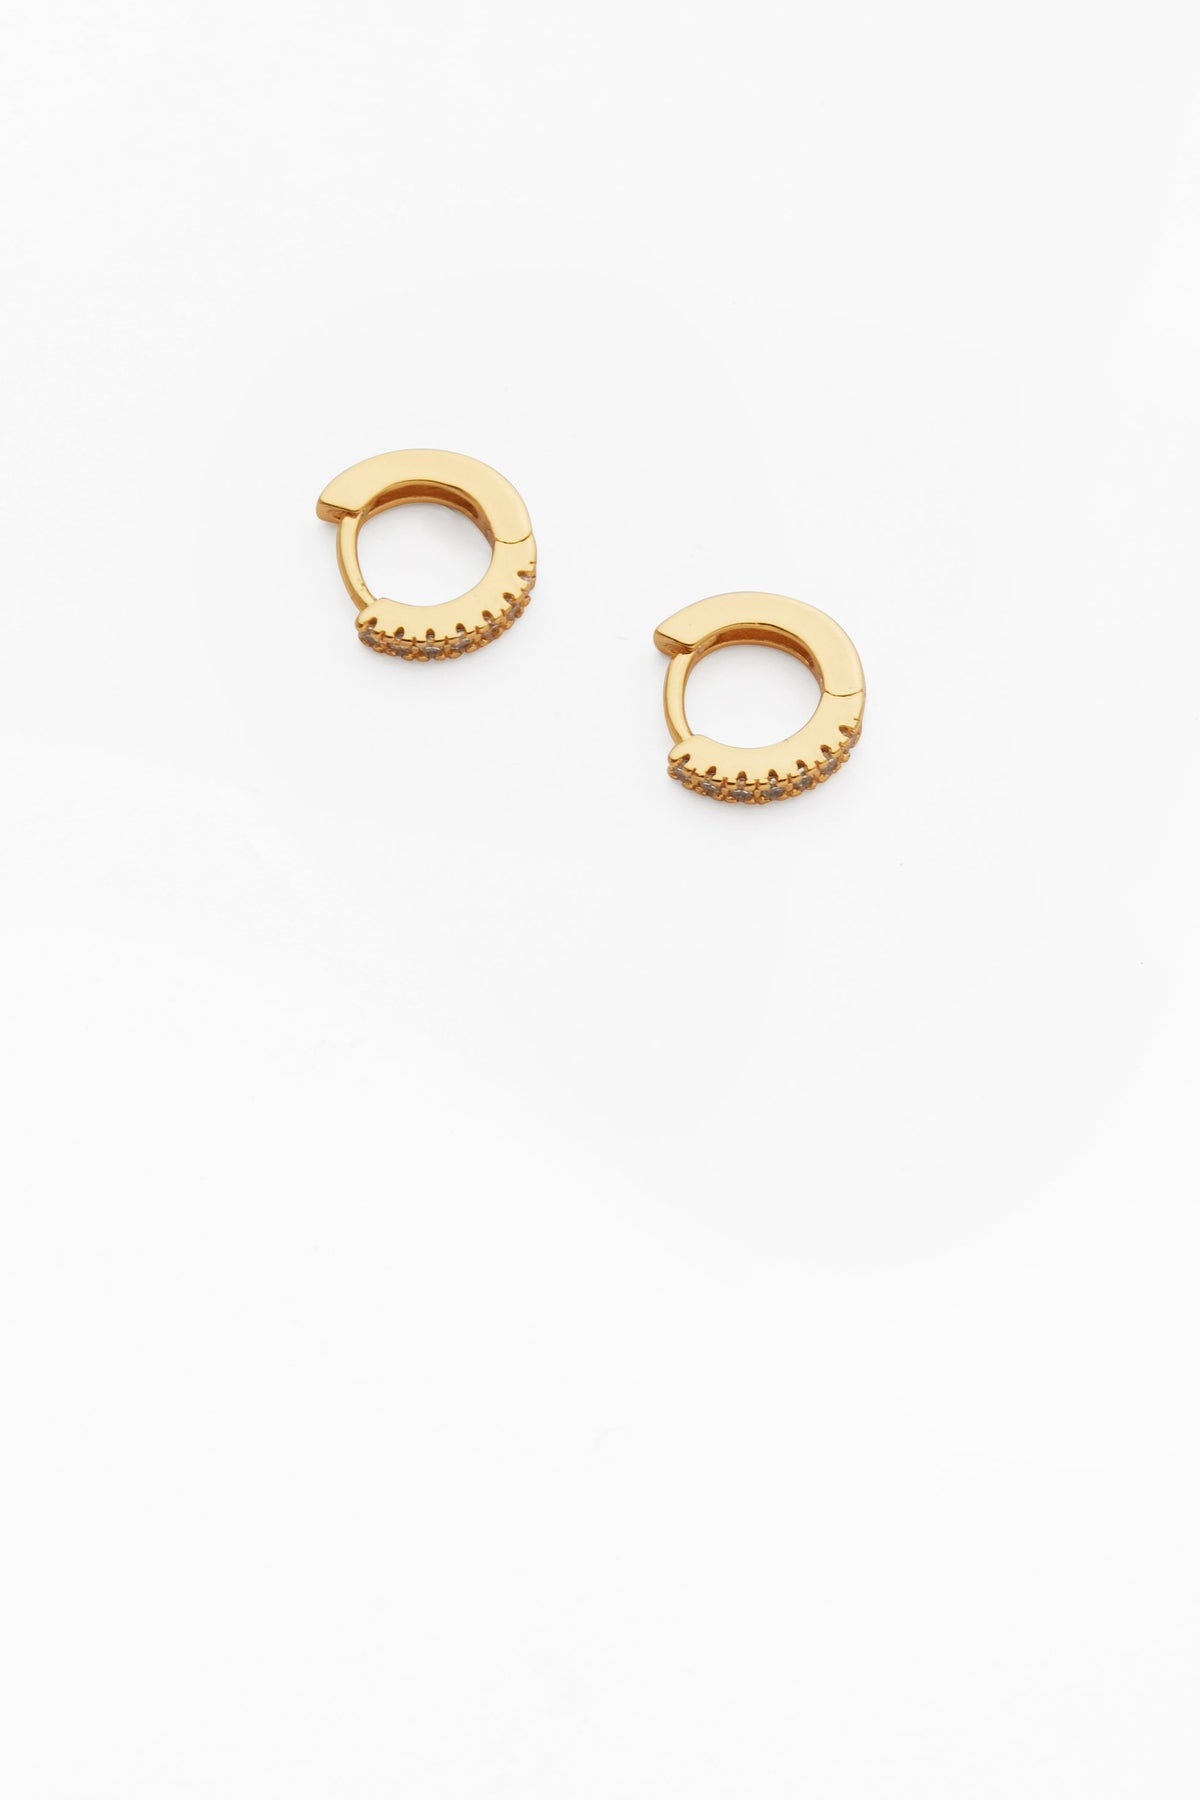 Reliquia Taylor Earrings // Clear